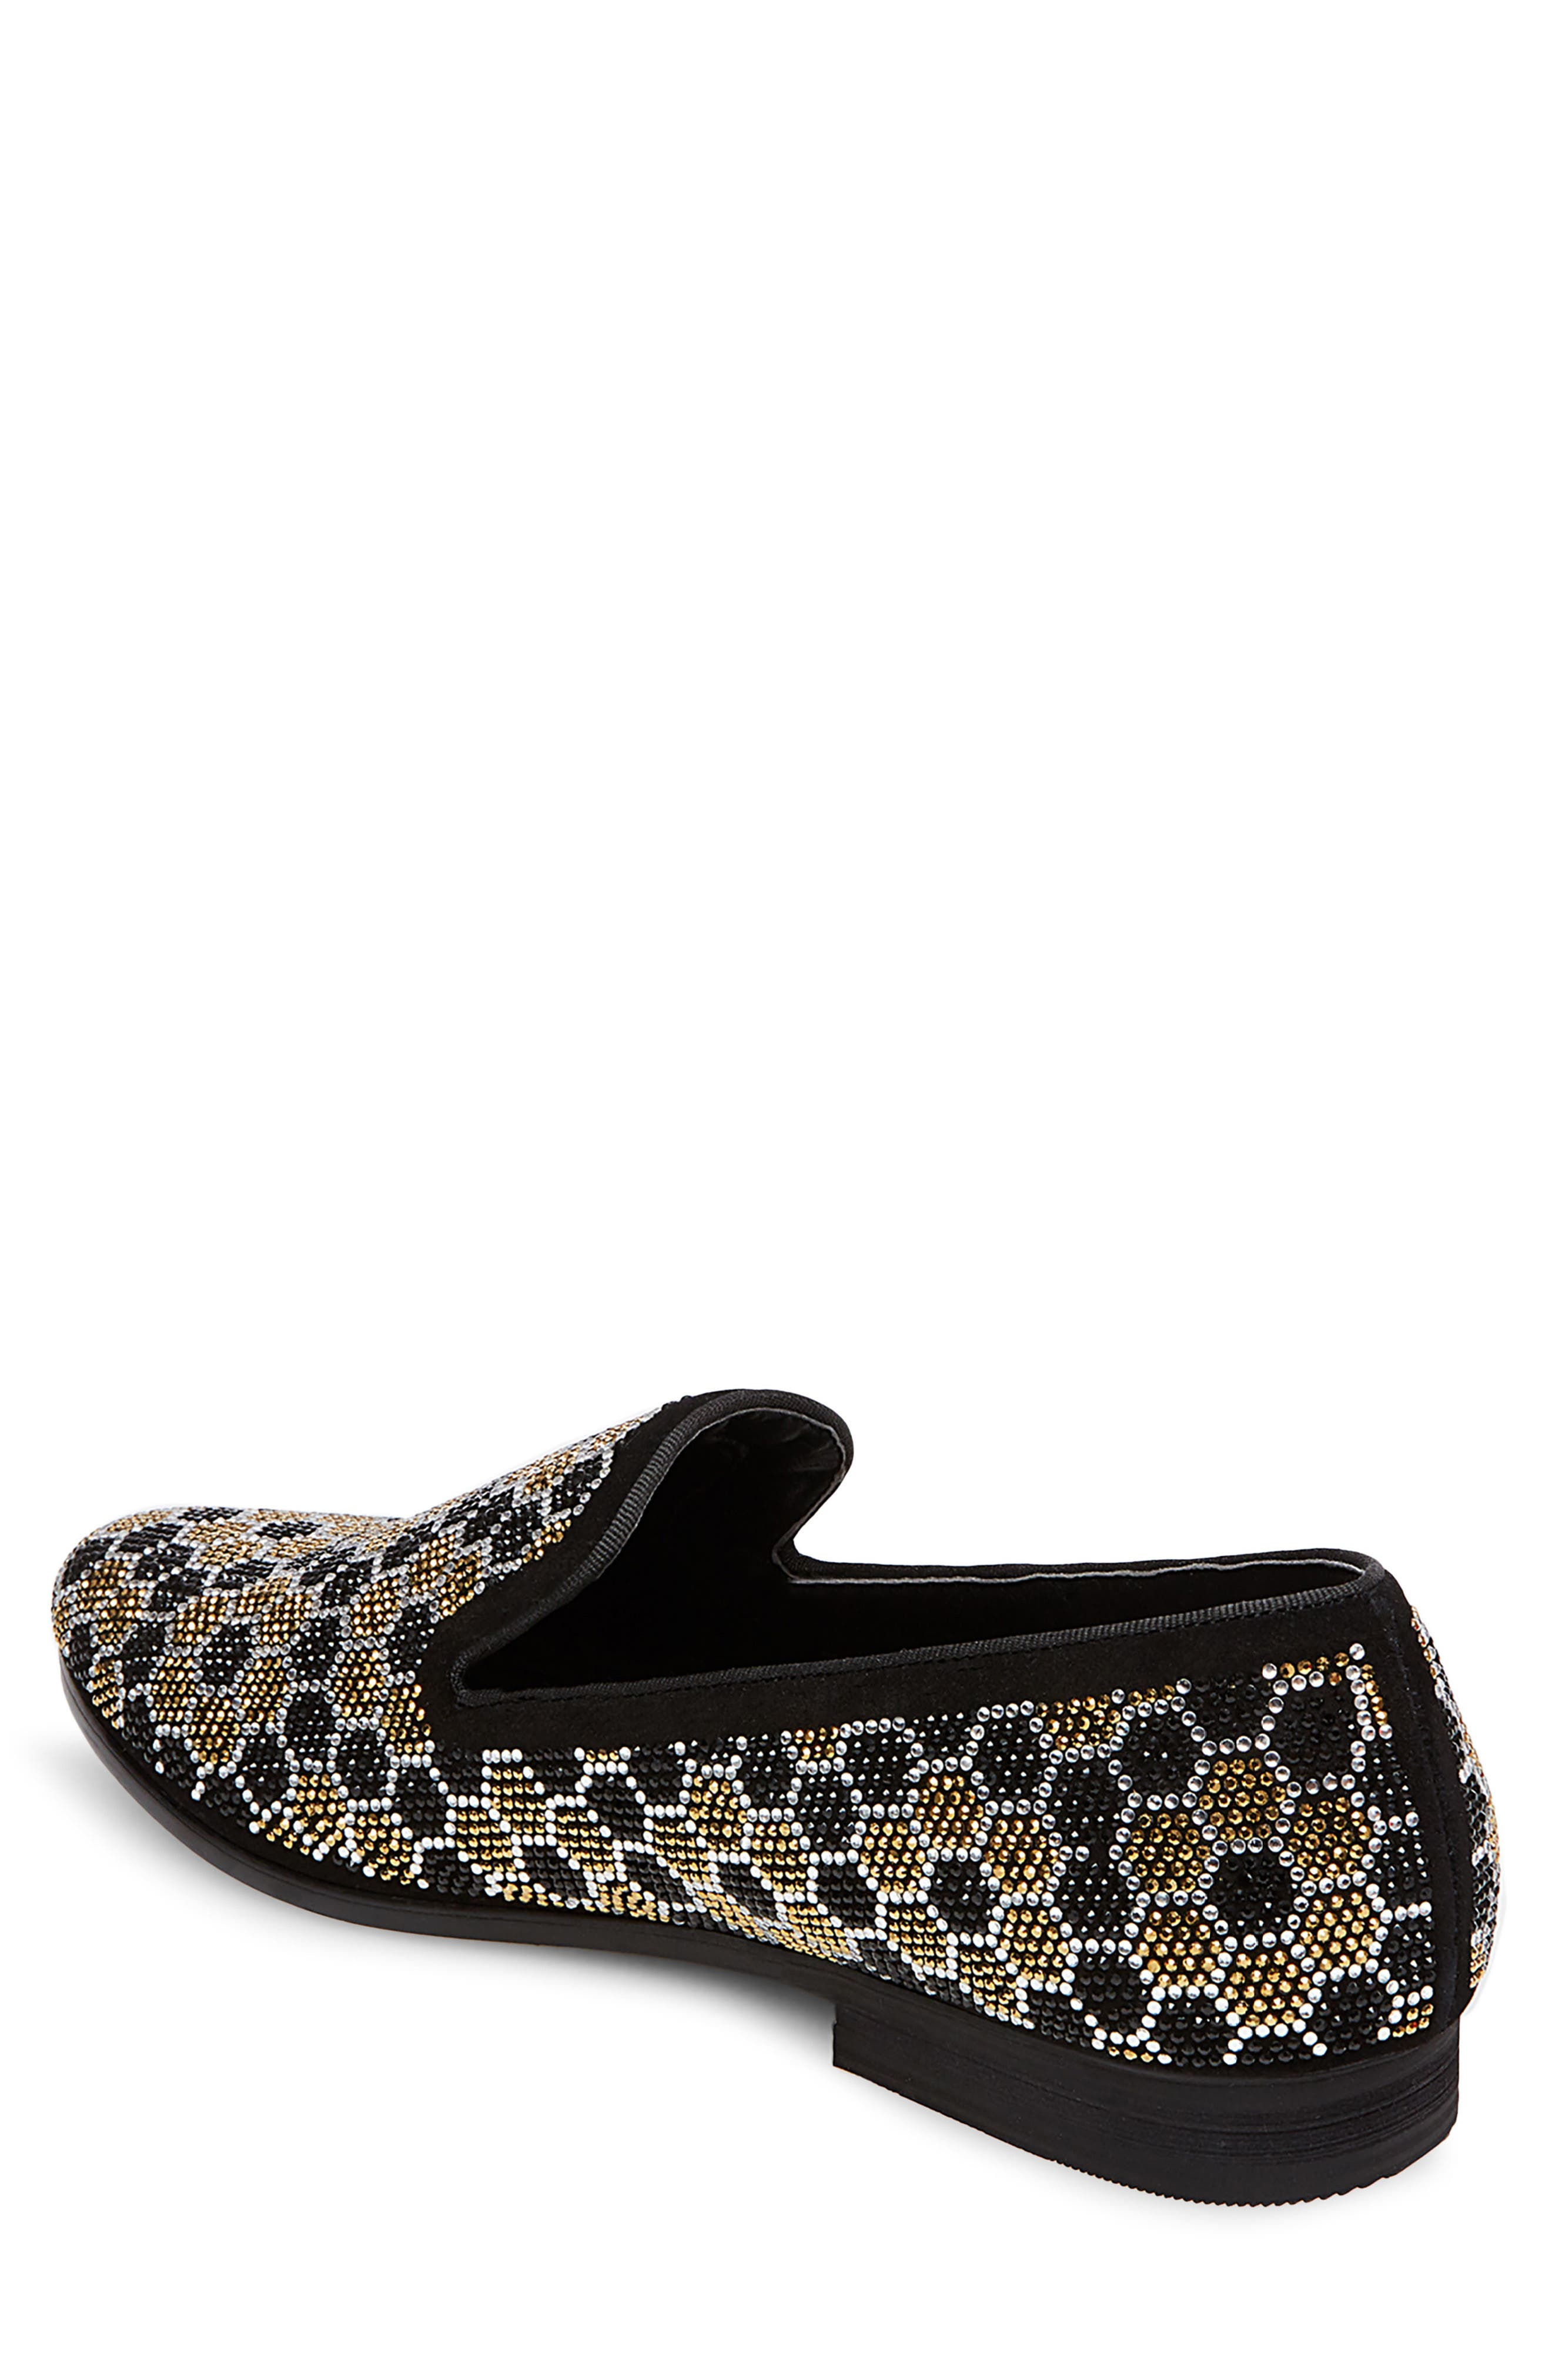 Caspian Studded Venetian Loafer,                             Alternate thumbnail 2, color,                             003